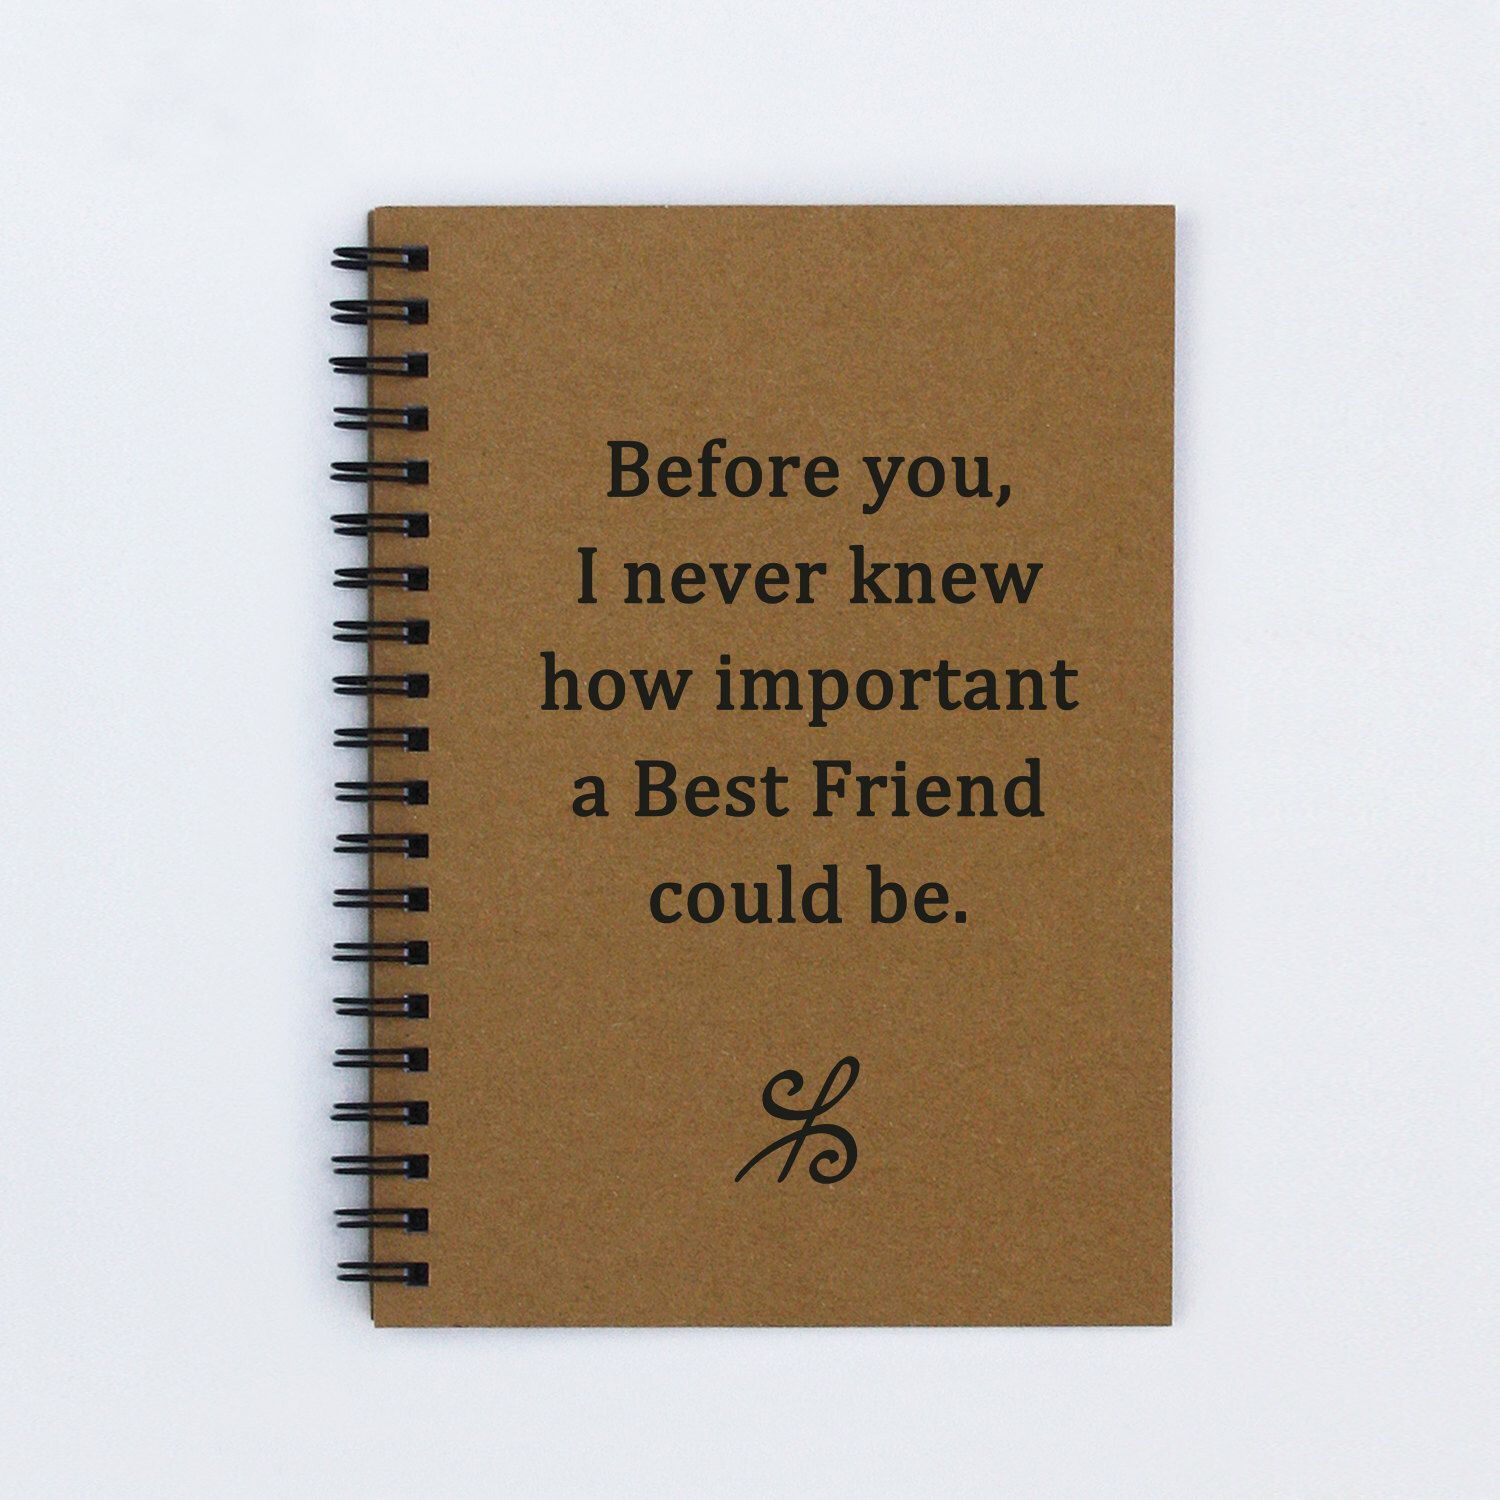 Scrapbook ideas for bff - Best Friend Journal Before You I Never Knew How Important A Best Friend Could Be 5 X 7 Journal Notebook Diary Scrapbook Book